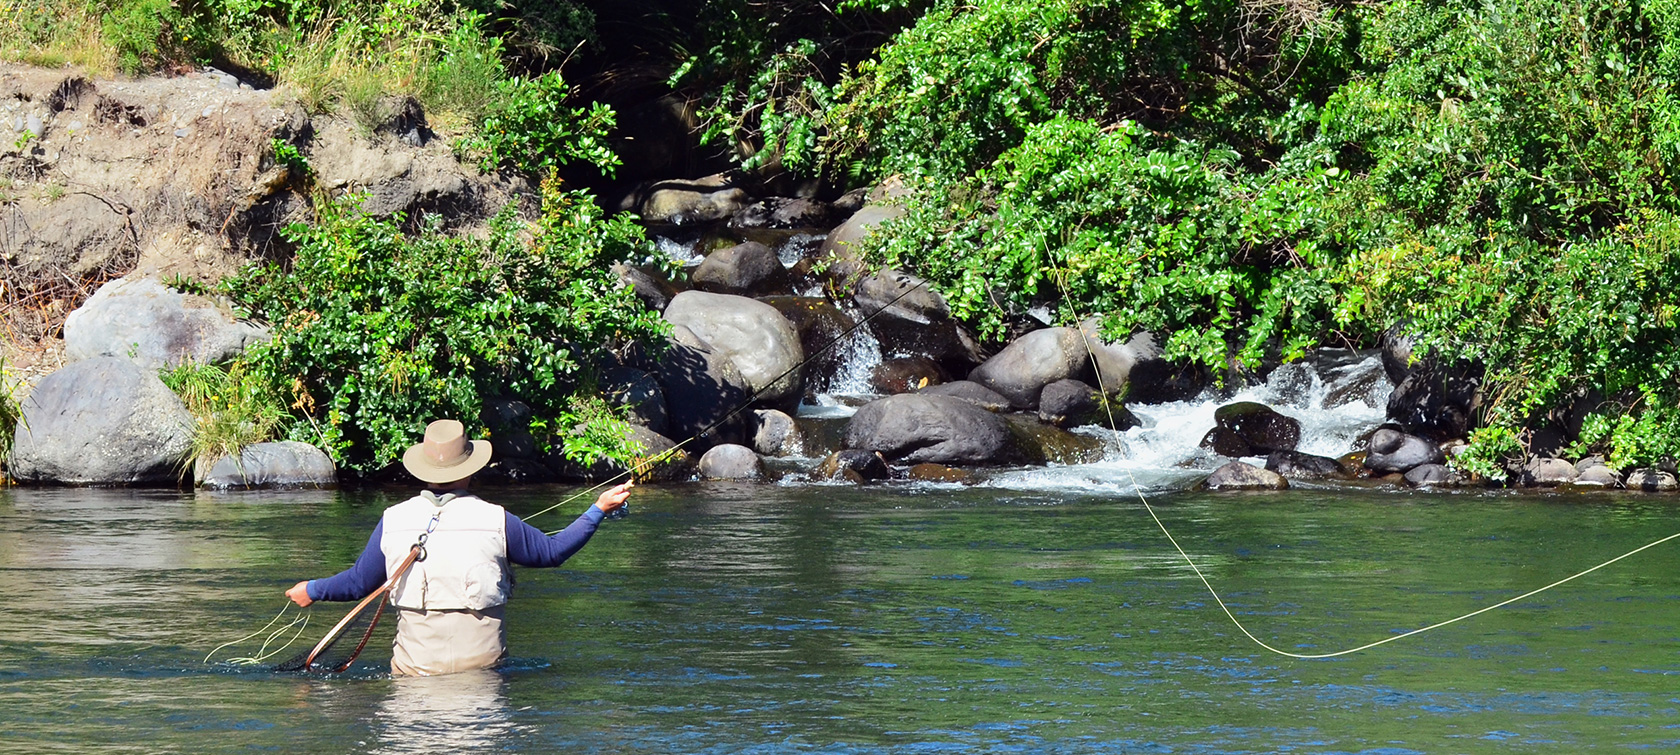 Fly fishing wine dine the north island australasia for Fly fishing new zealand